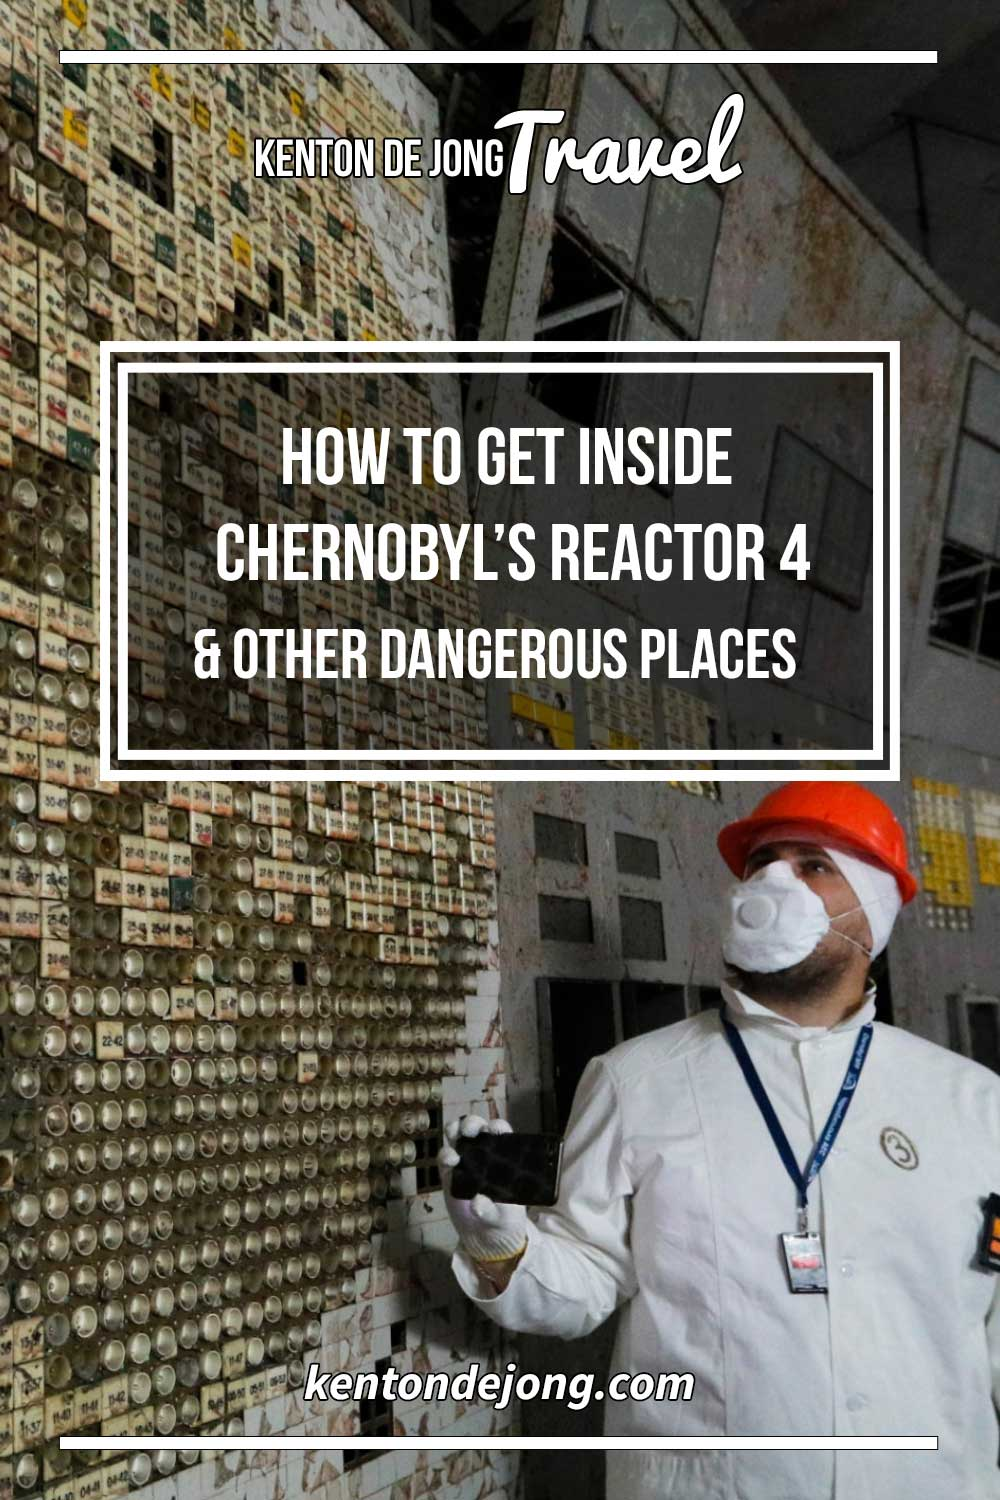 How to get Inside Chernobyl's Reactor 4